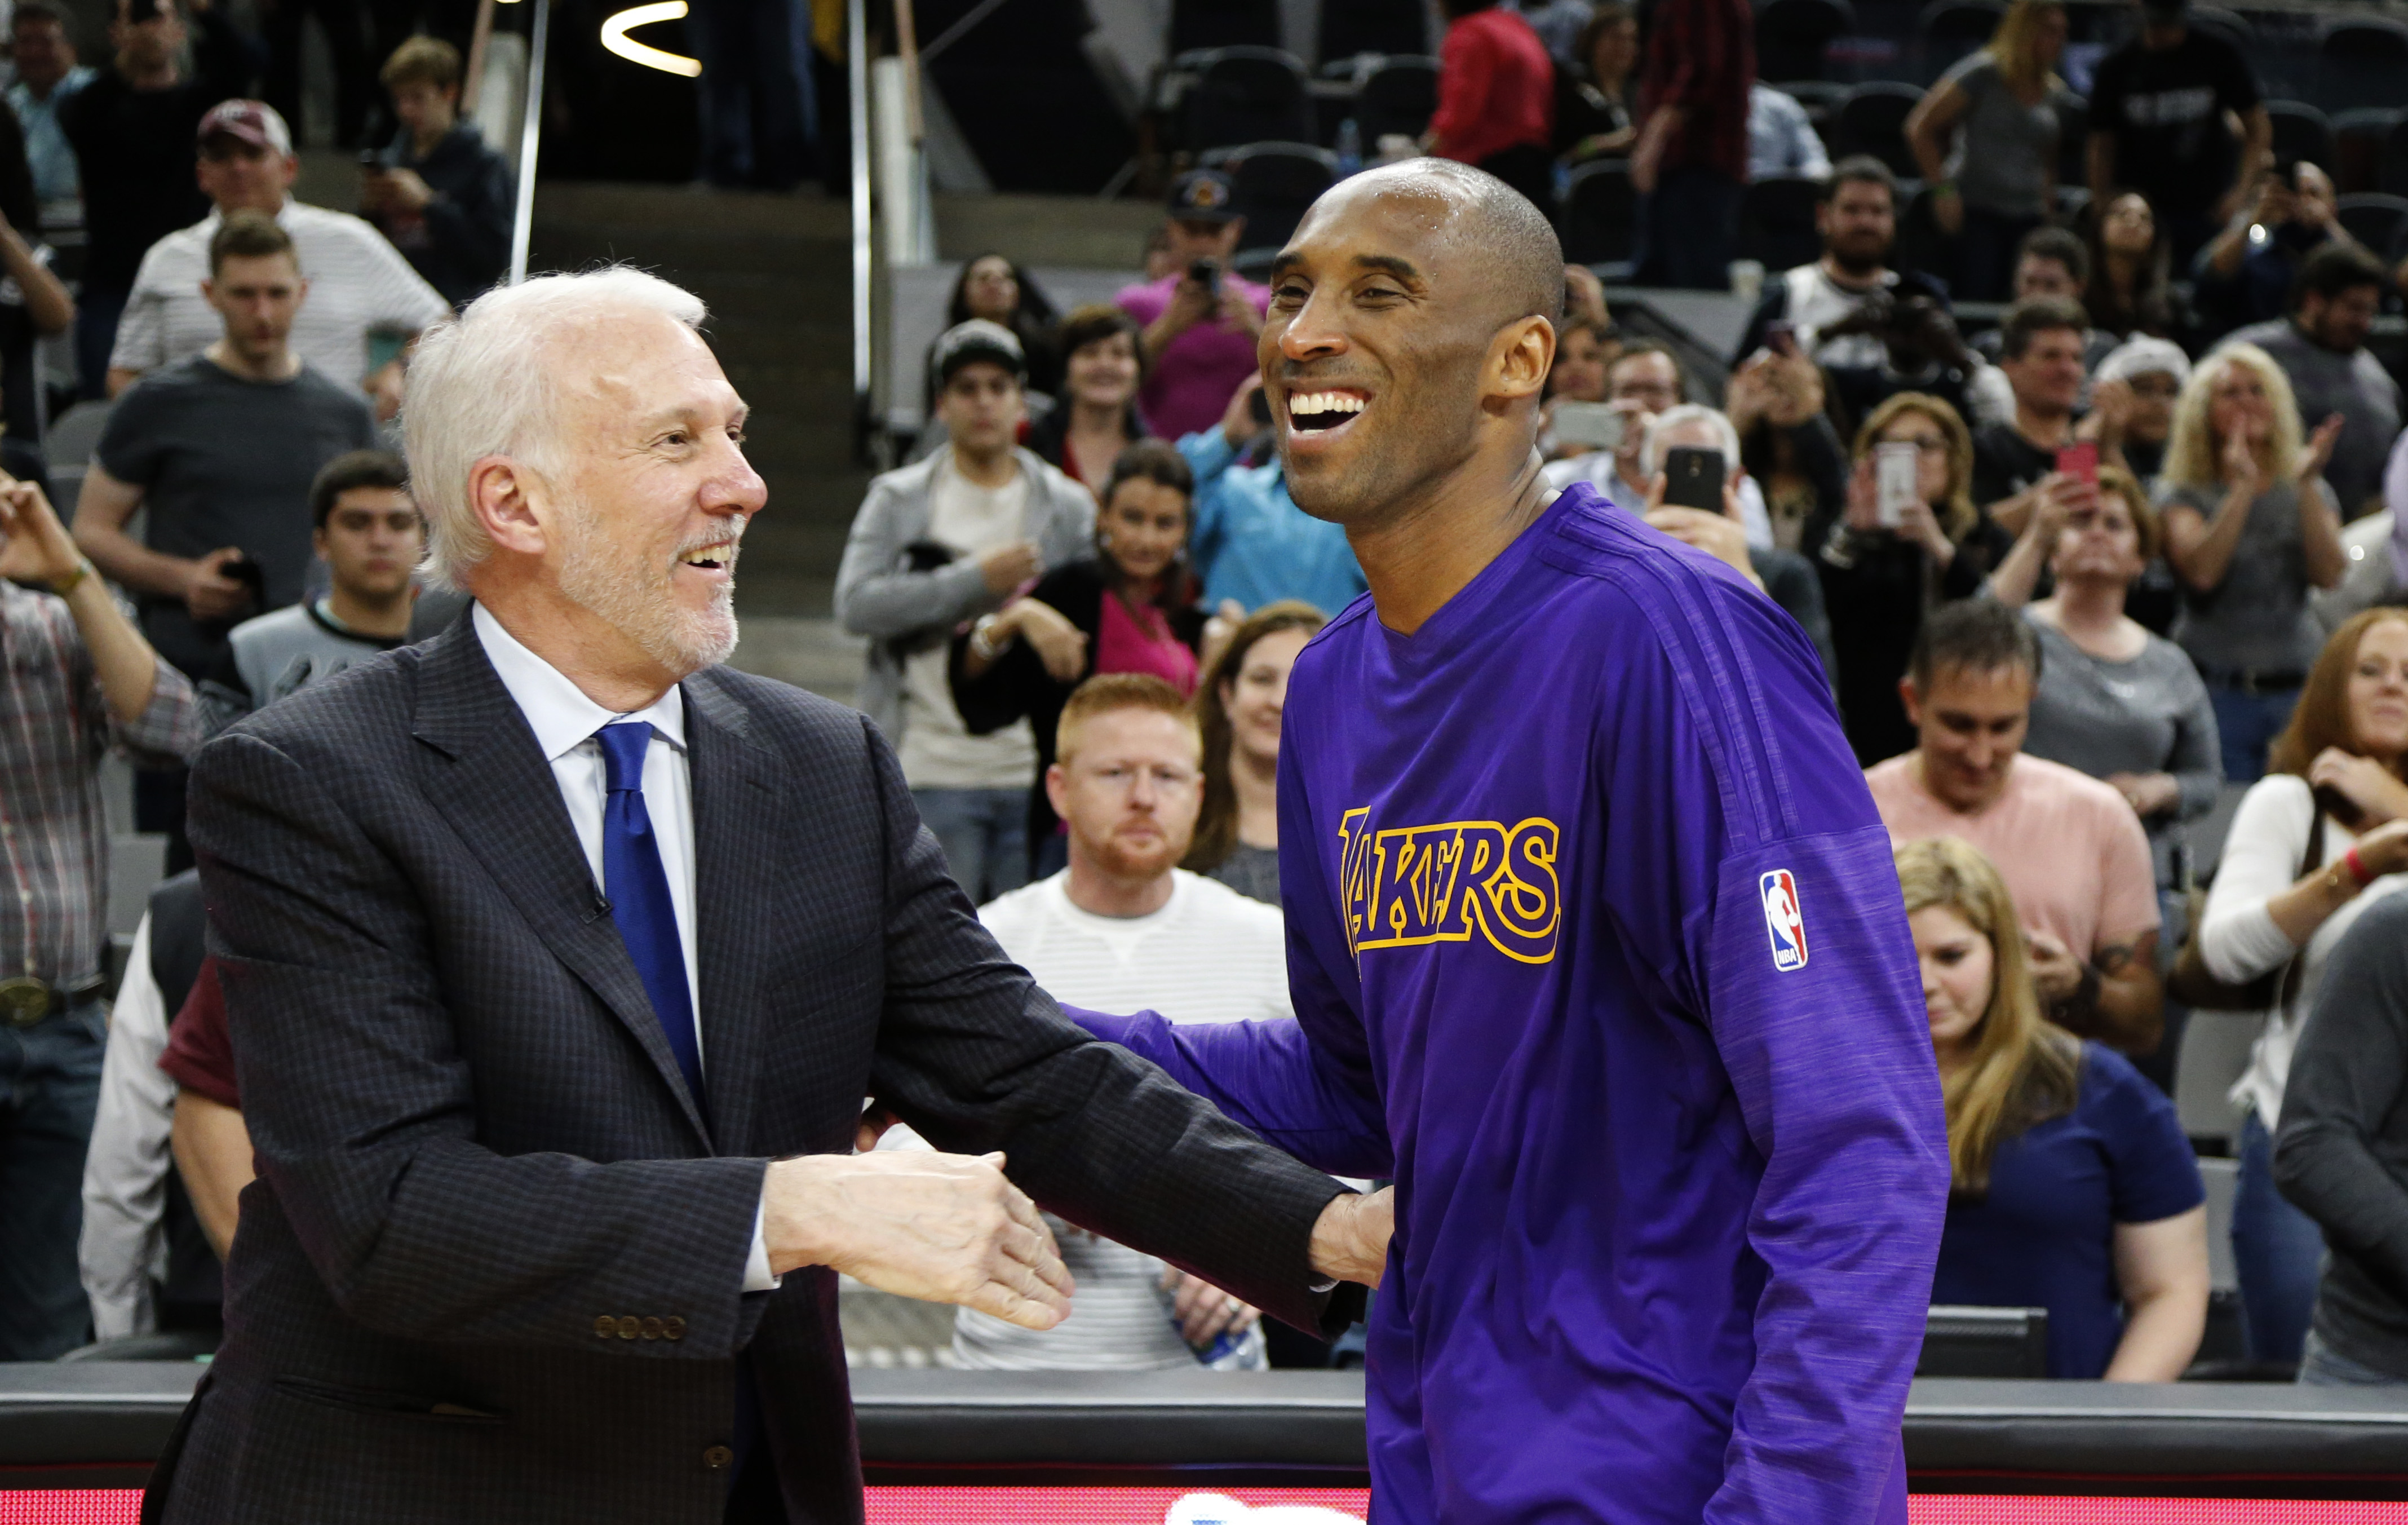 SAN ANTONIO, TX - DECEMBER 11: Kobe Bryant #24 of the Los Angeles Lakers talks with head coach Gregg Popovich of the San Antonio Spurs at the end of the game at AT&T Center on December 11, 2015 in San Antonio,Texas.  (Photo by Ron Cortes/Getty Images)